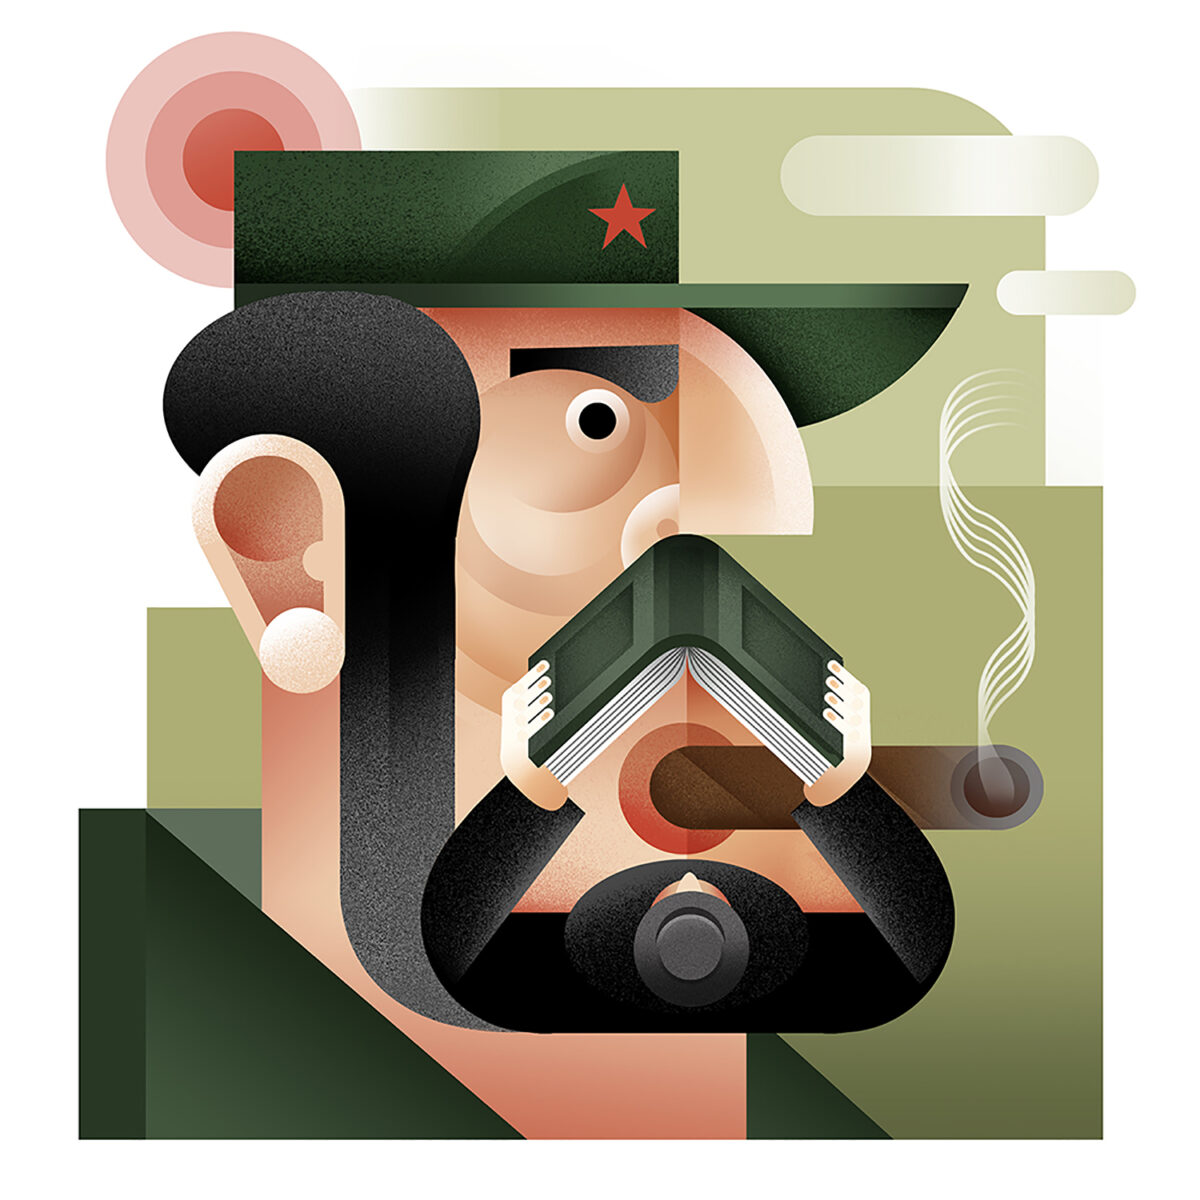 Richard Solomon - maria_corte_illustration_fidel_castro_2020